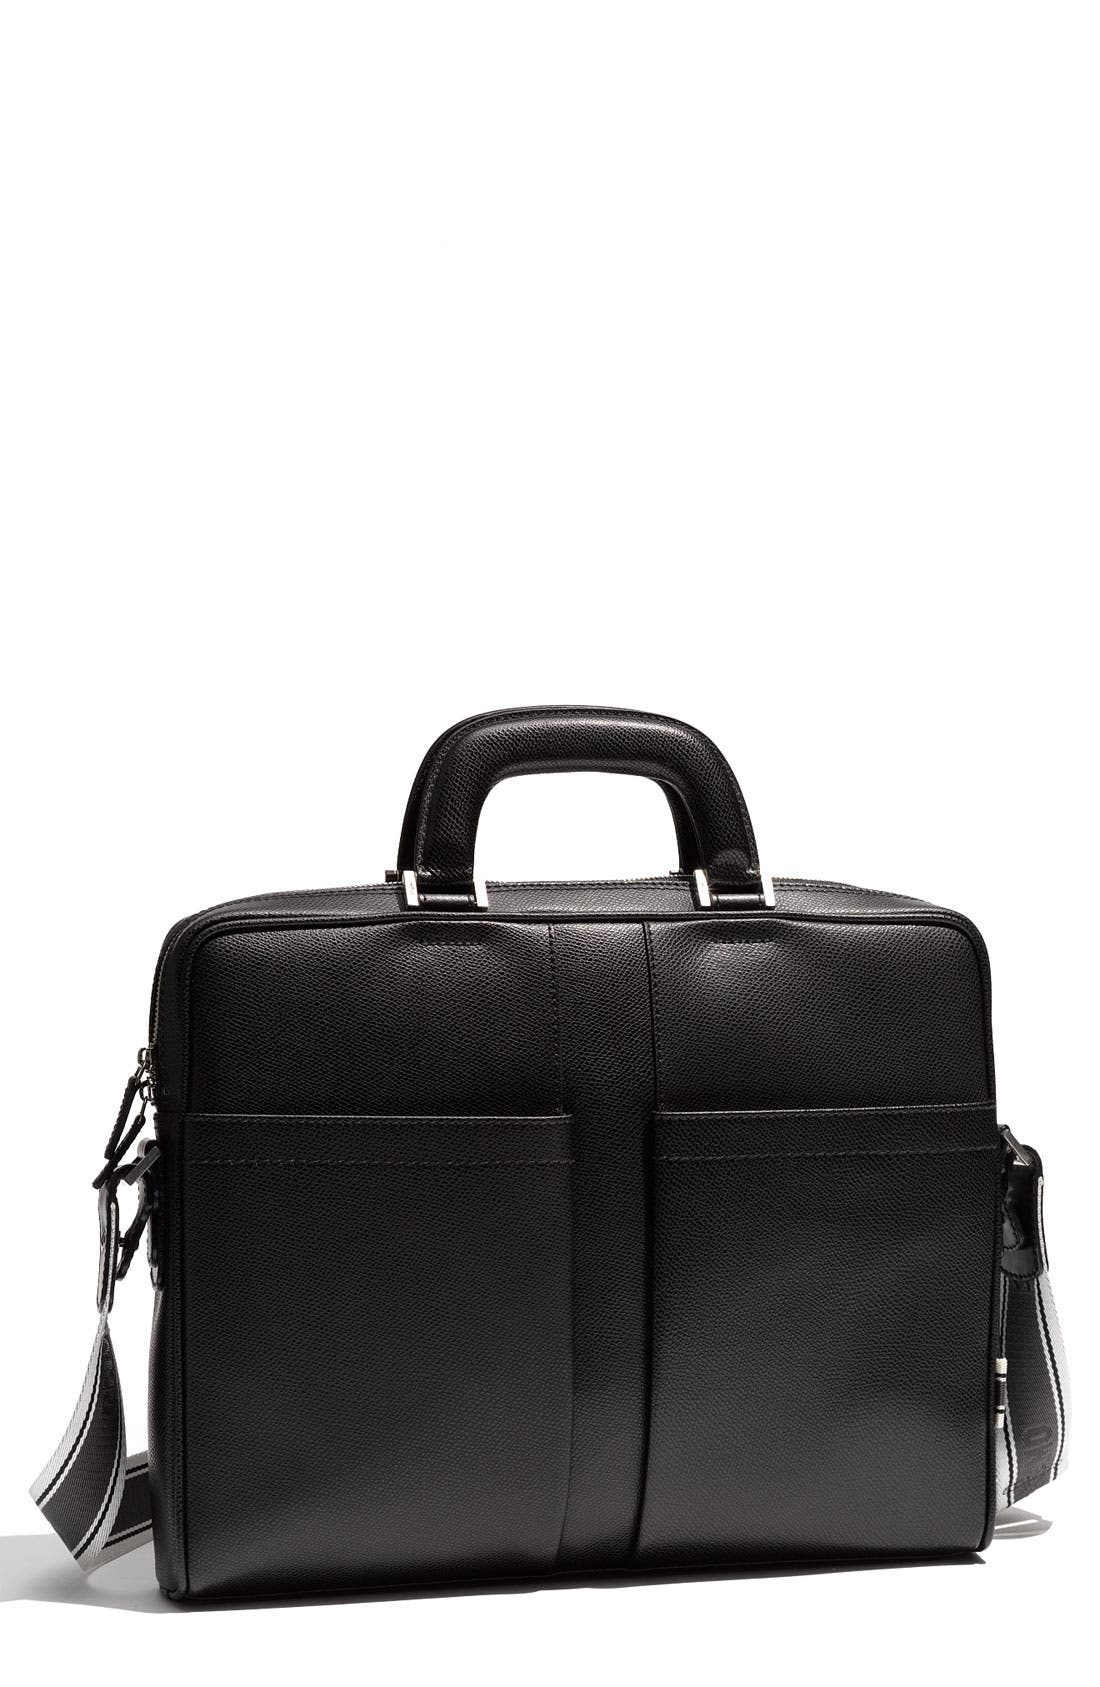 Alternate Image 1 Selected - Salvatore Ferragamo 'Los Angeles' Briefcase